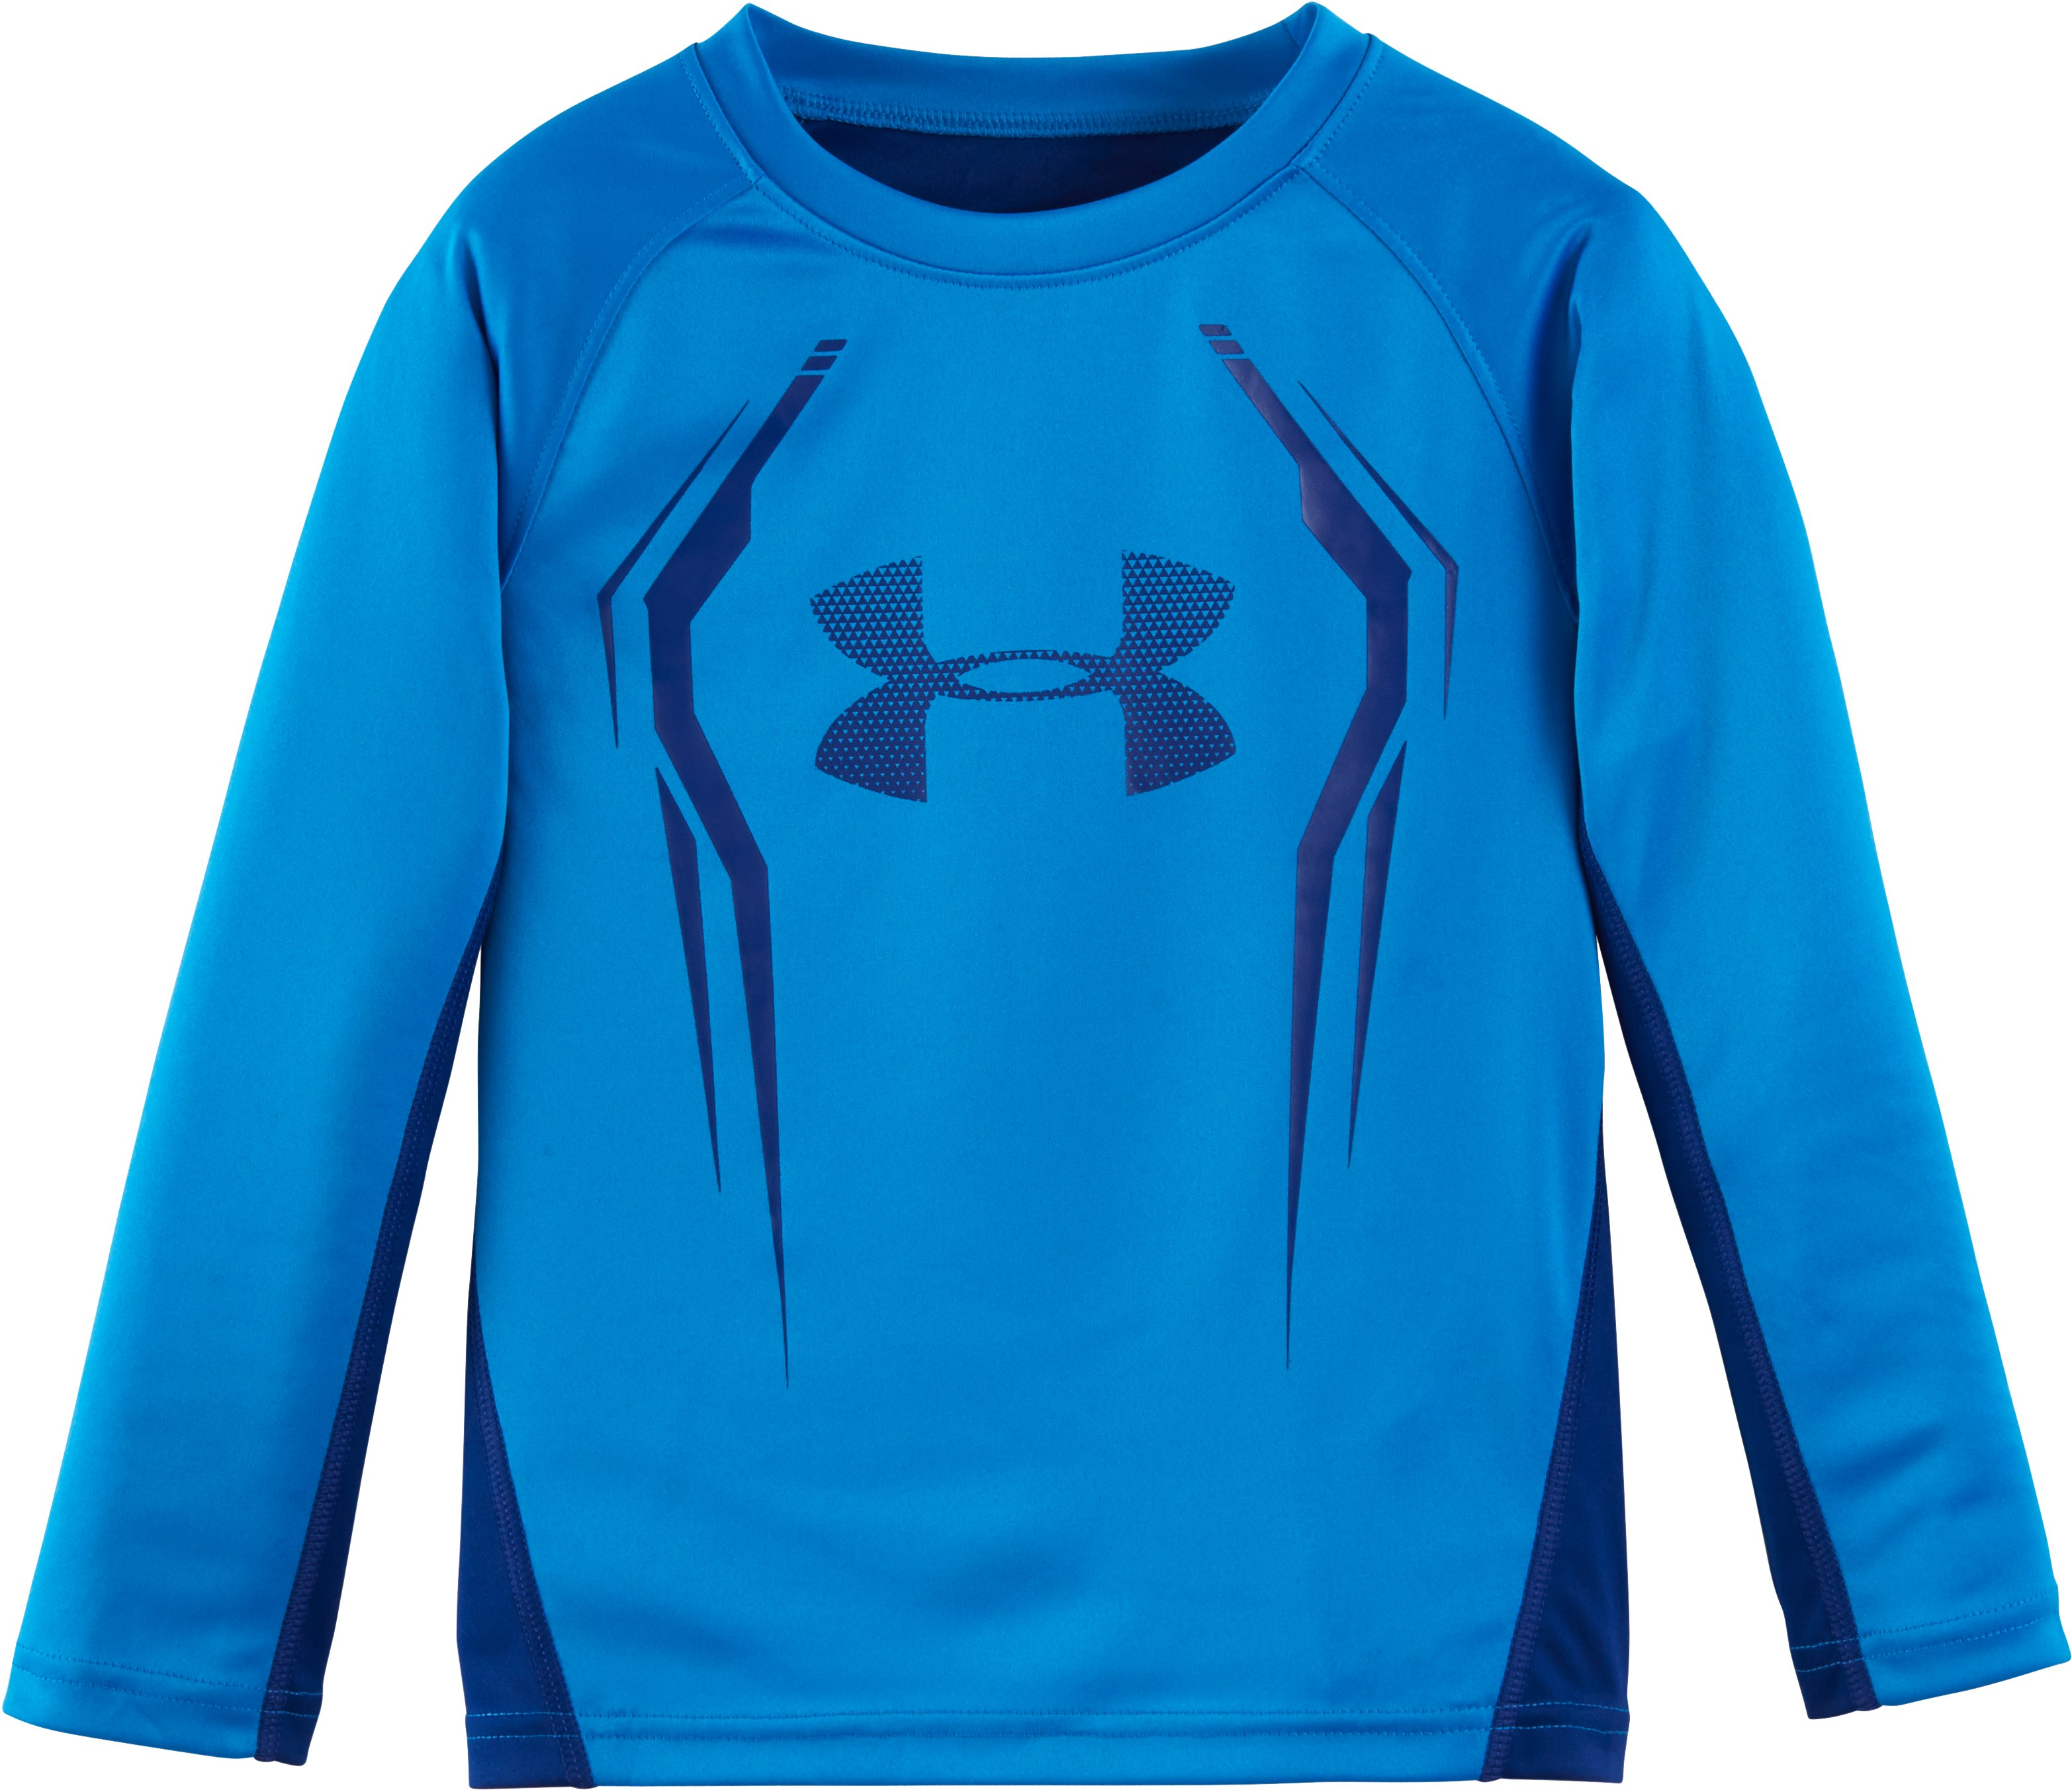 Boys' Pre-School UA Maxed Out Long Sleeve, BRILLIANT BLUE